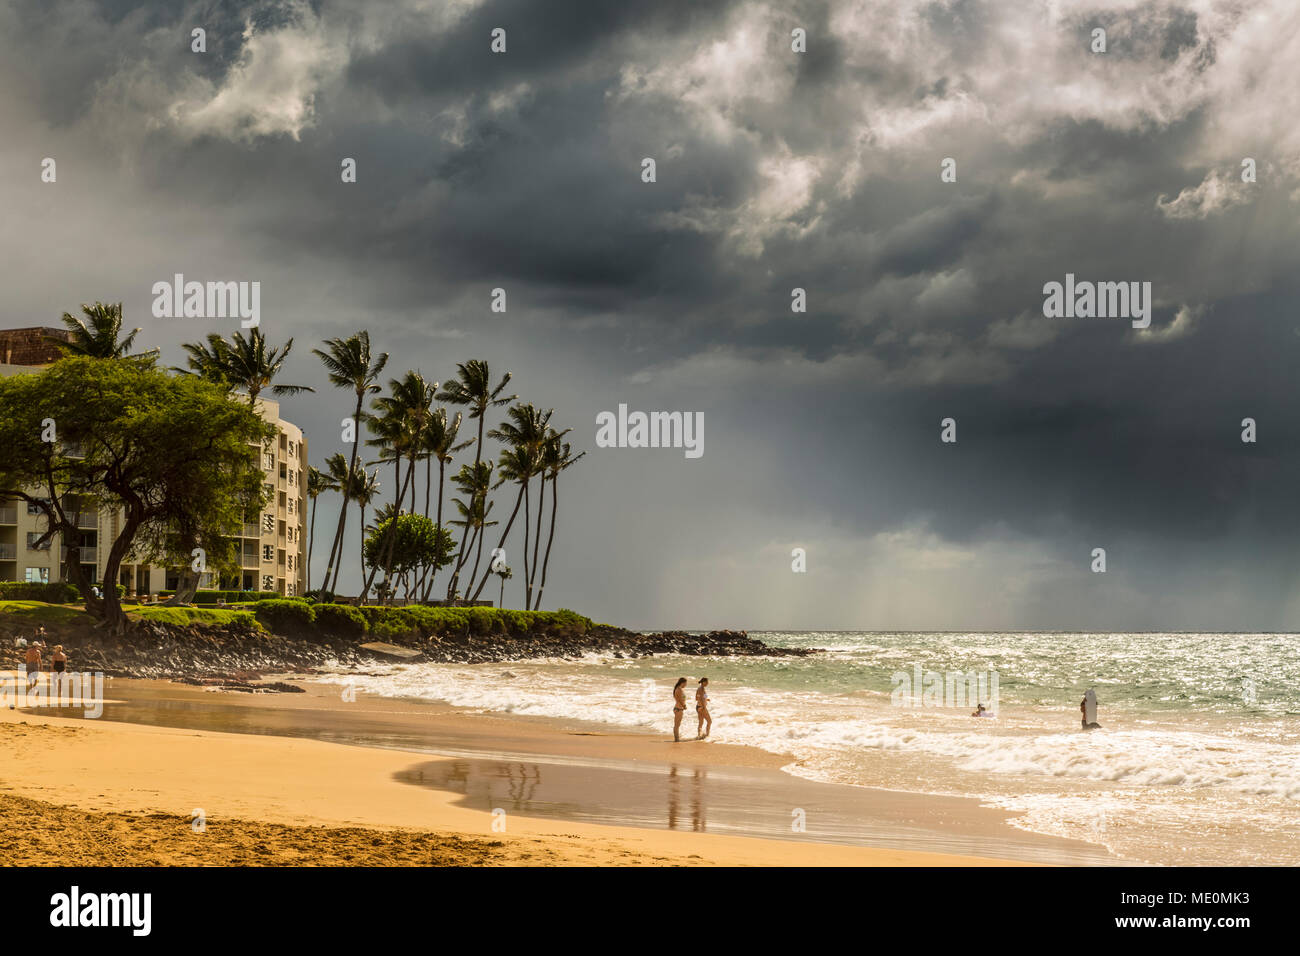 Tourists on a beach on the island of Maui with dark clouds and rainfall over the ocean in the distance - Stock Image